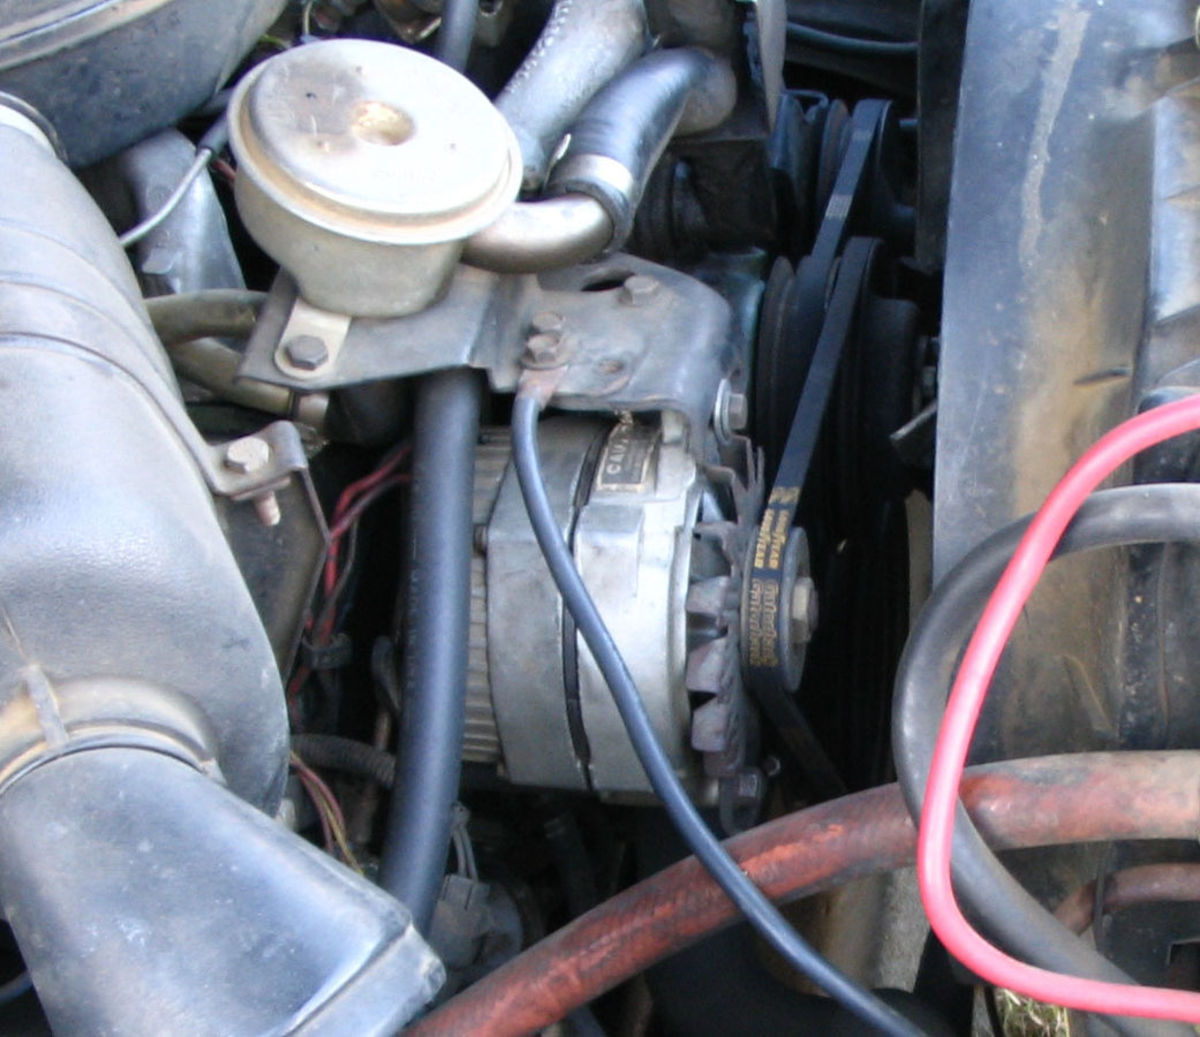 If necessary, replace the voltage regulator or install a new alternator.